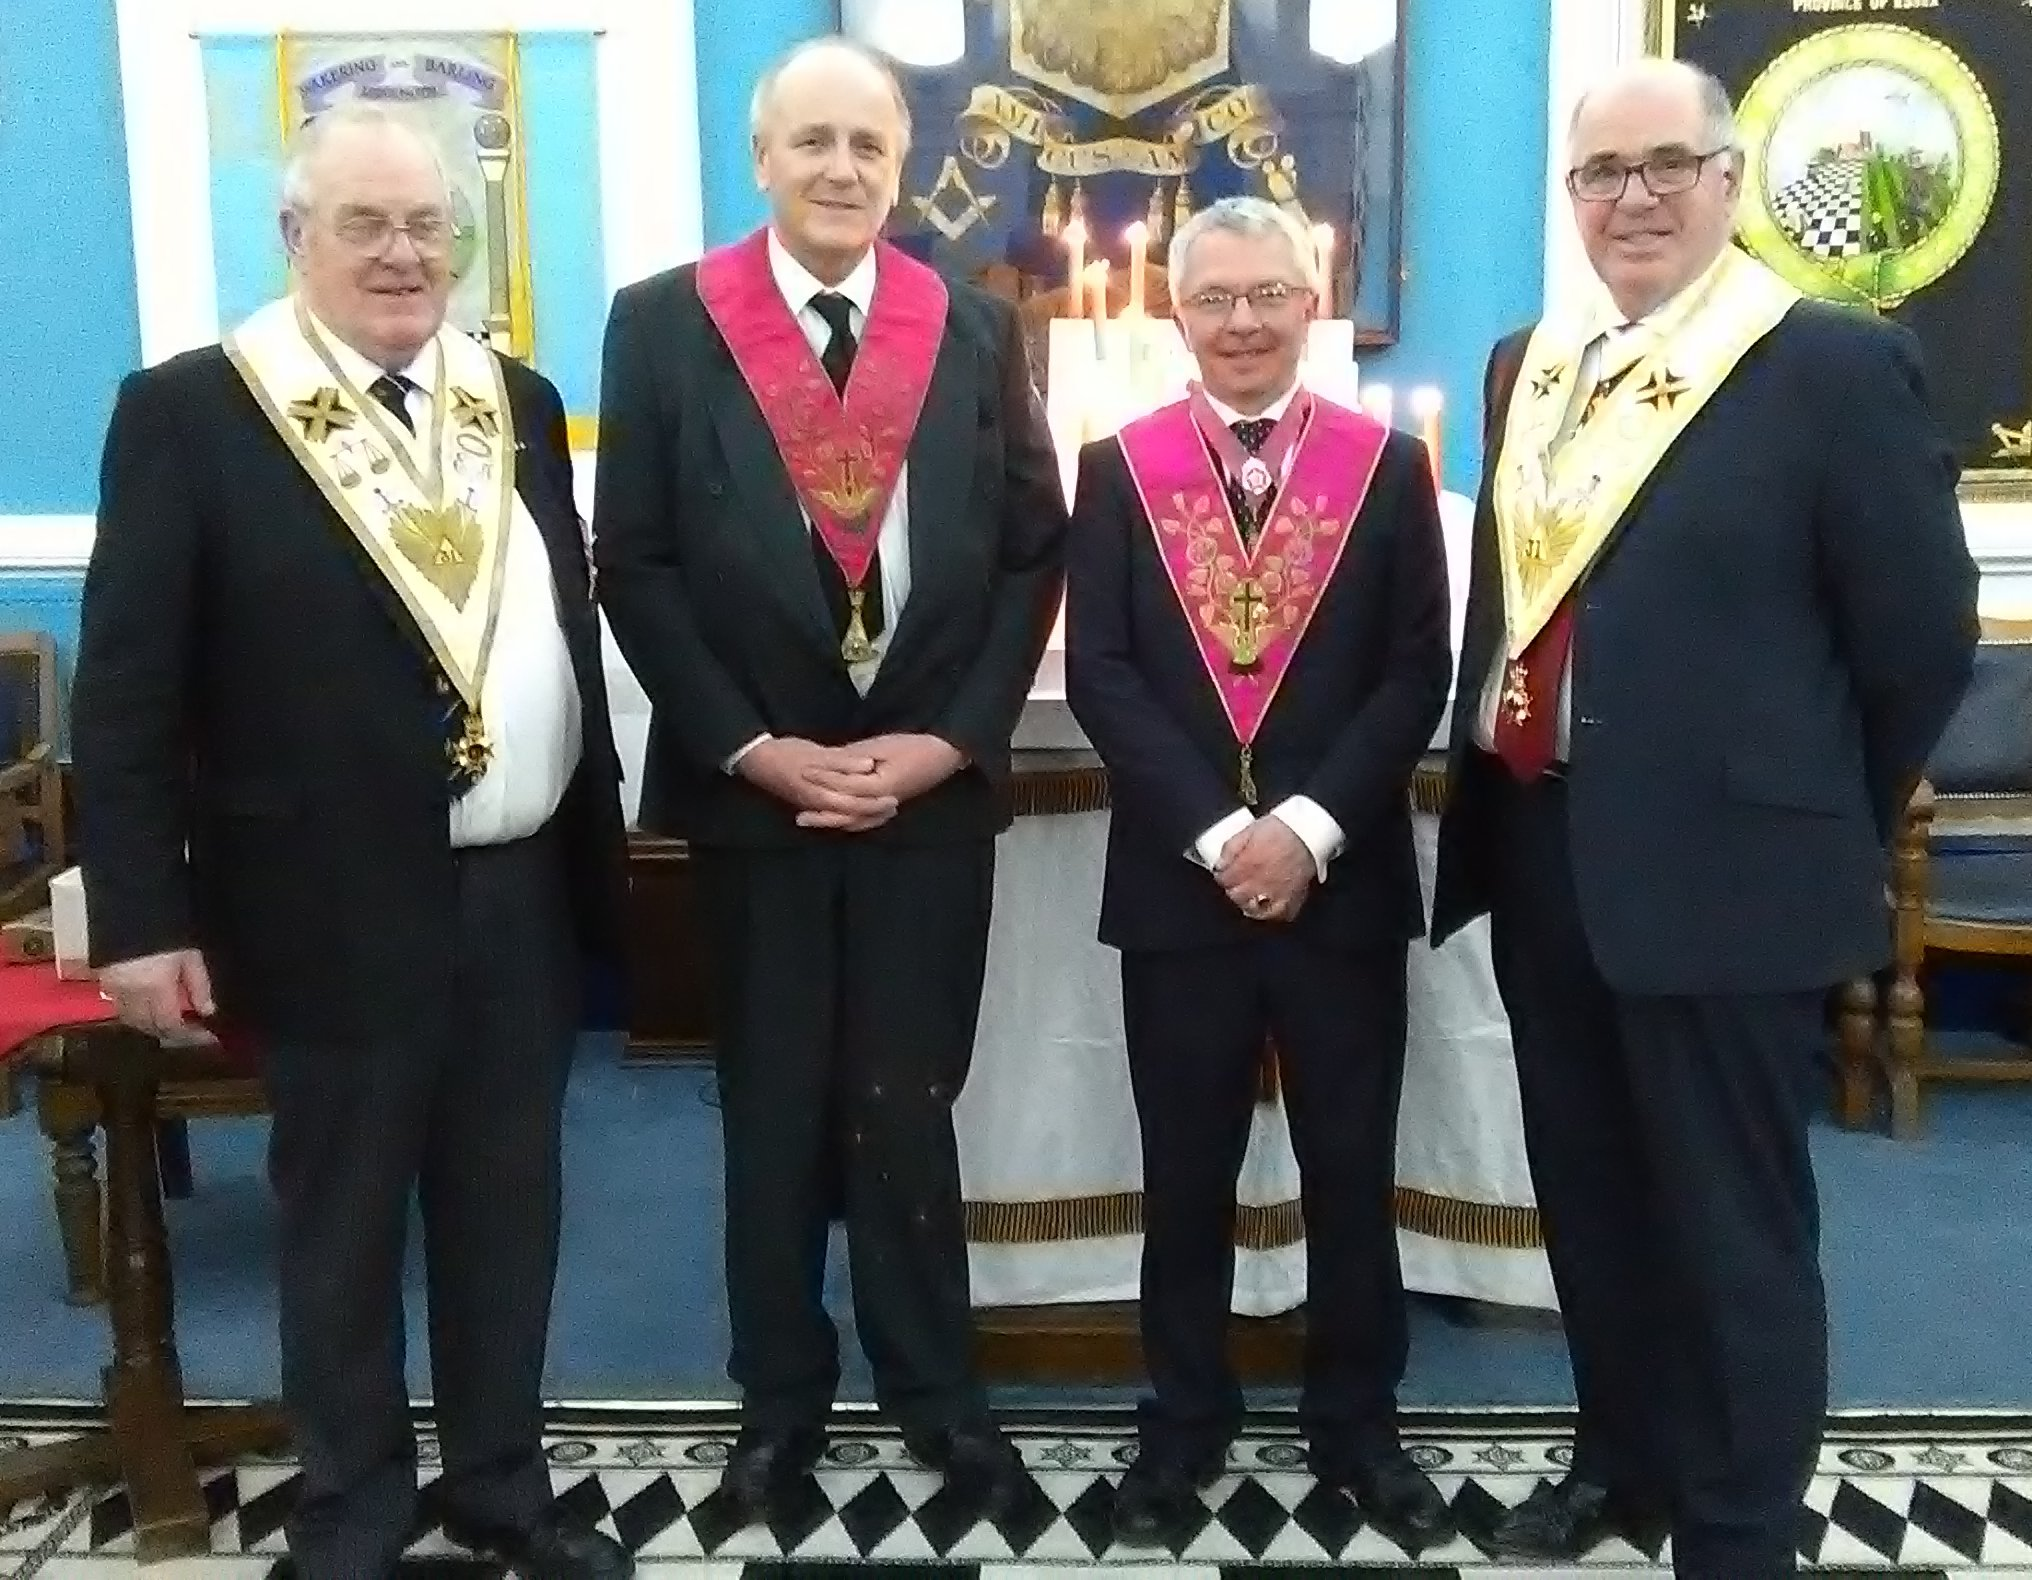 History in the Making – Rose Croix District of South Essex